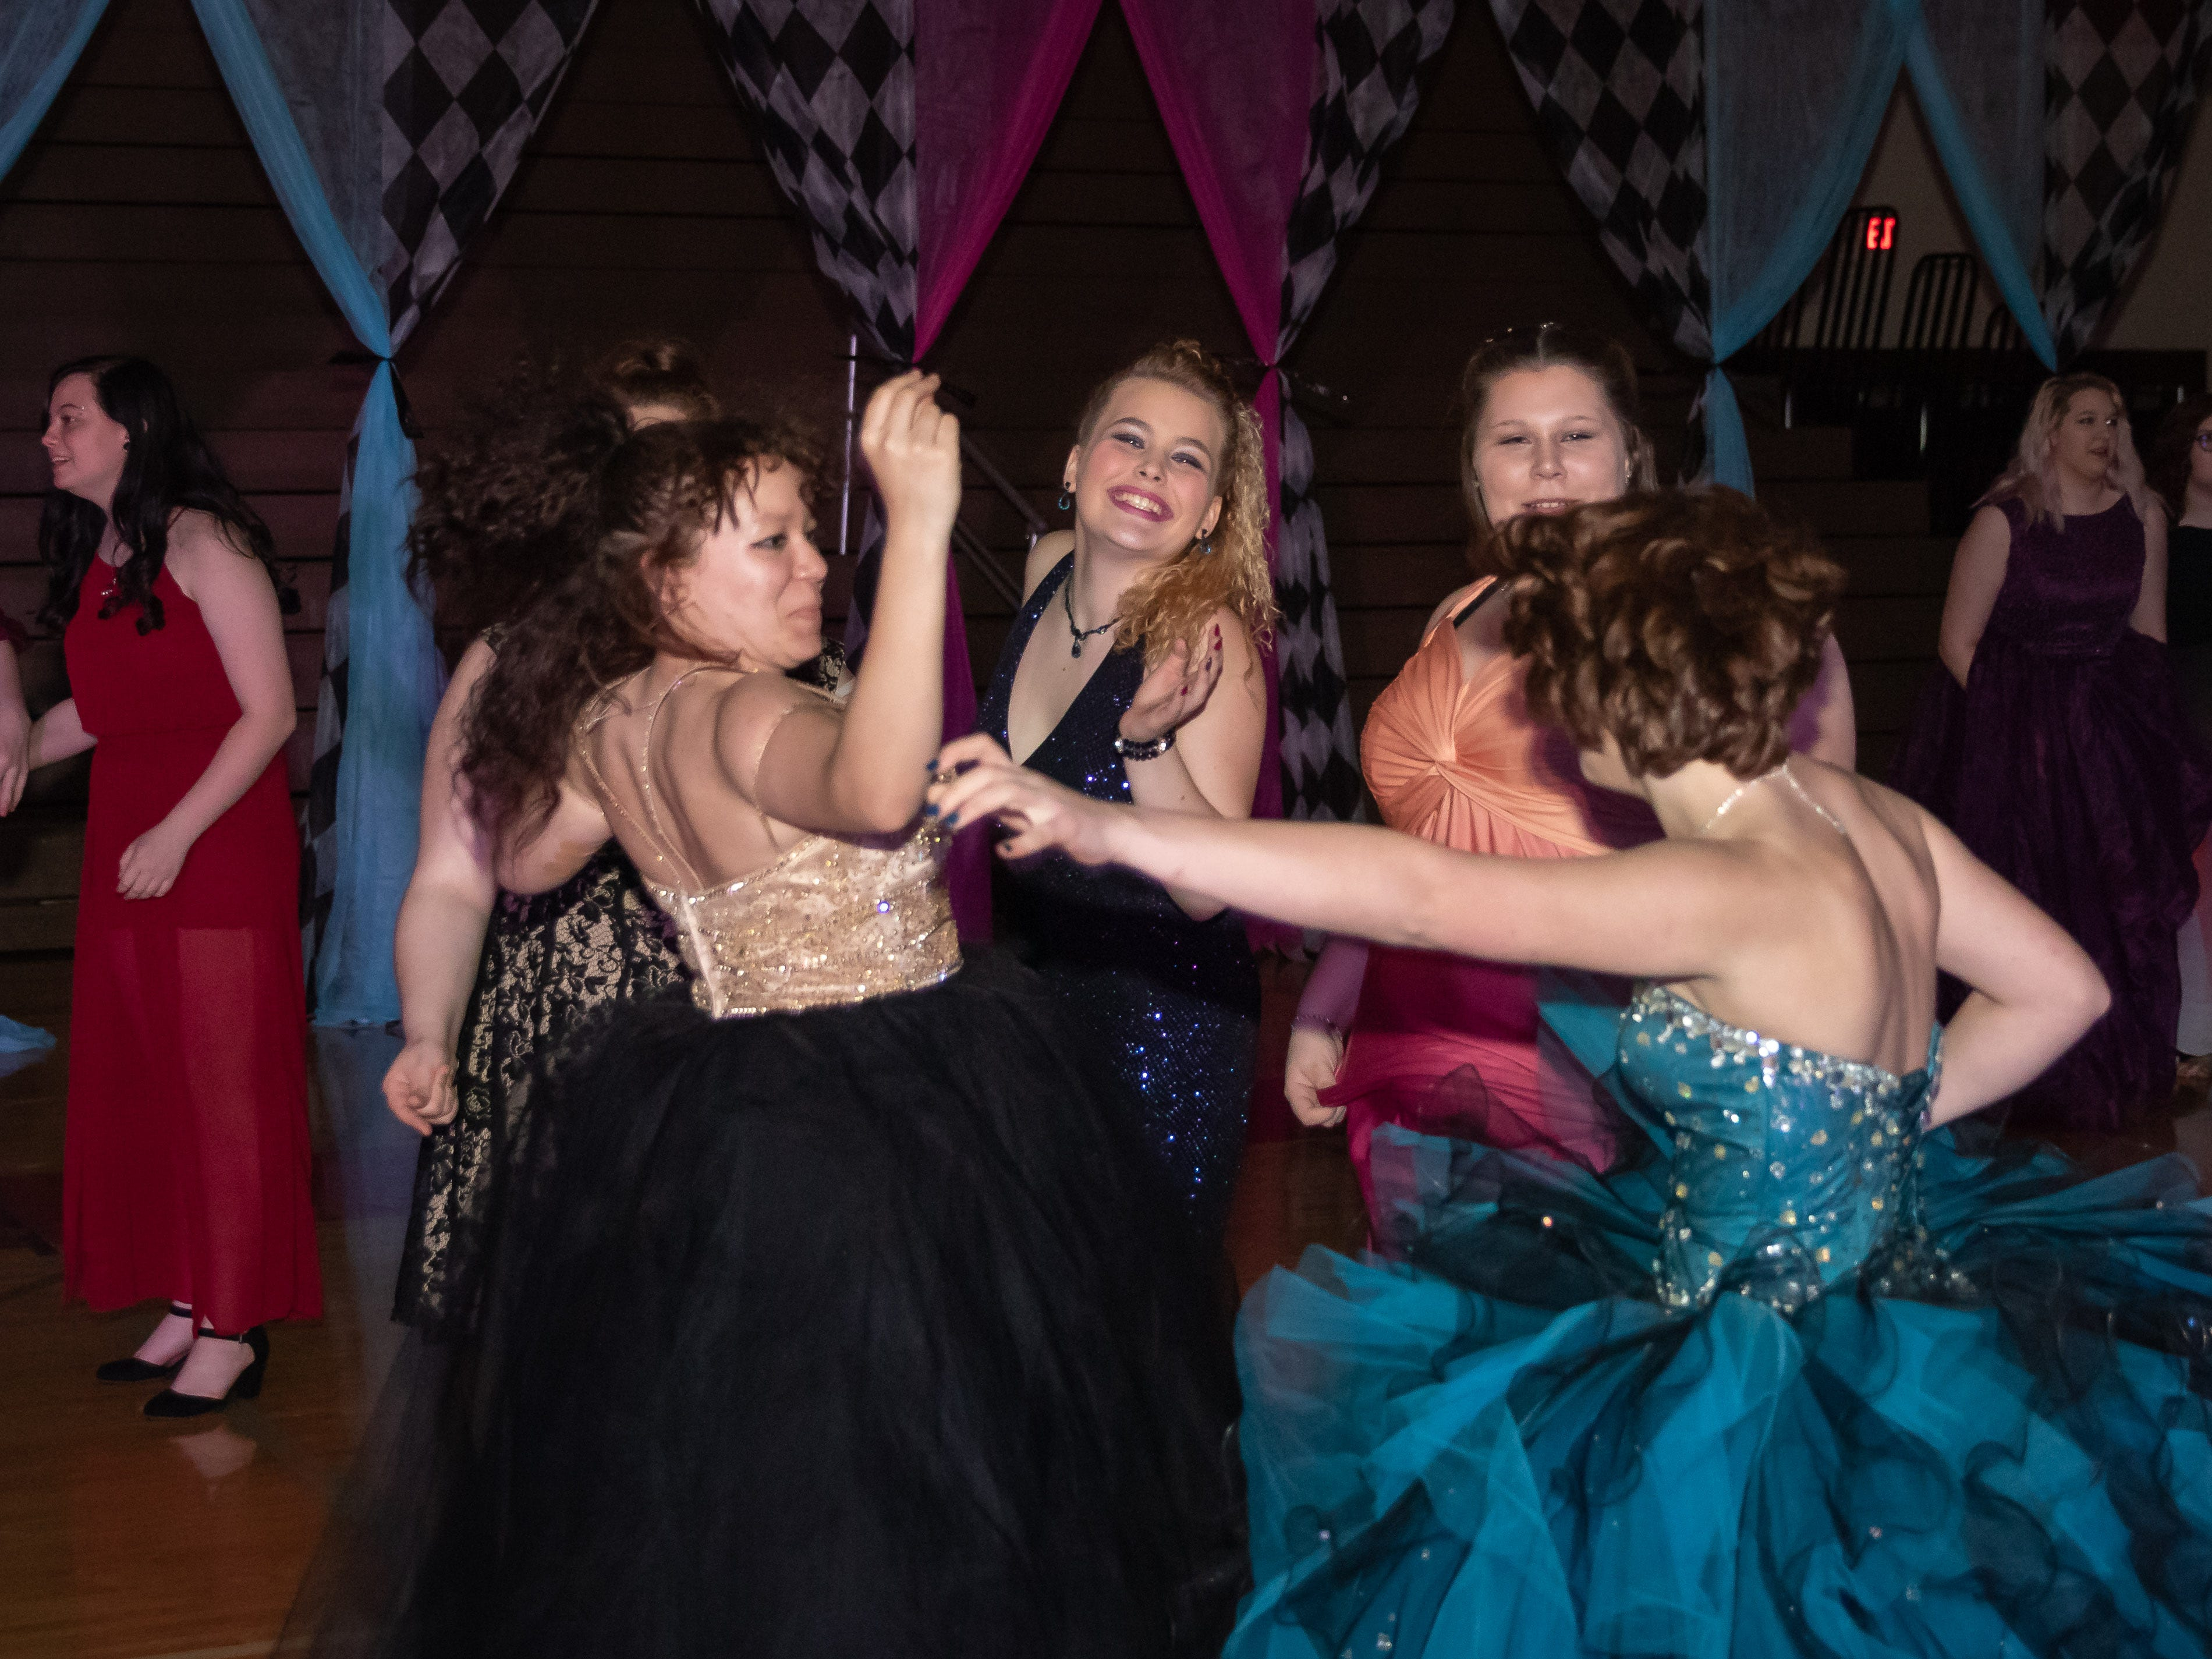 Students dance during the Lincoln High School prom on Saturday, May 4, 2019, at the high school in Wisconsin Rapids.